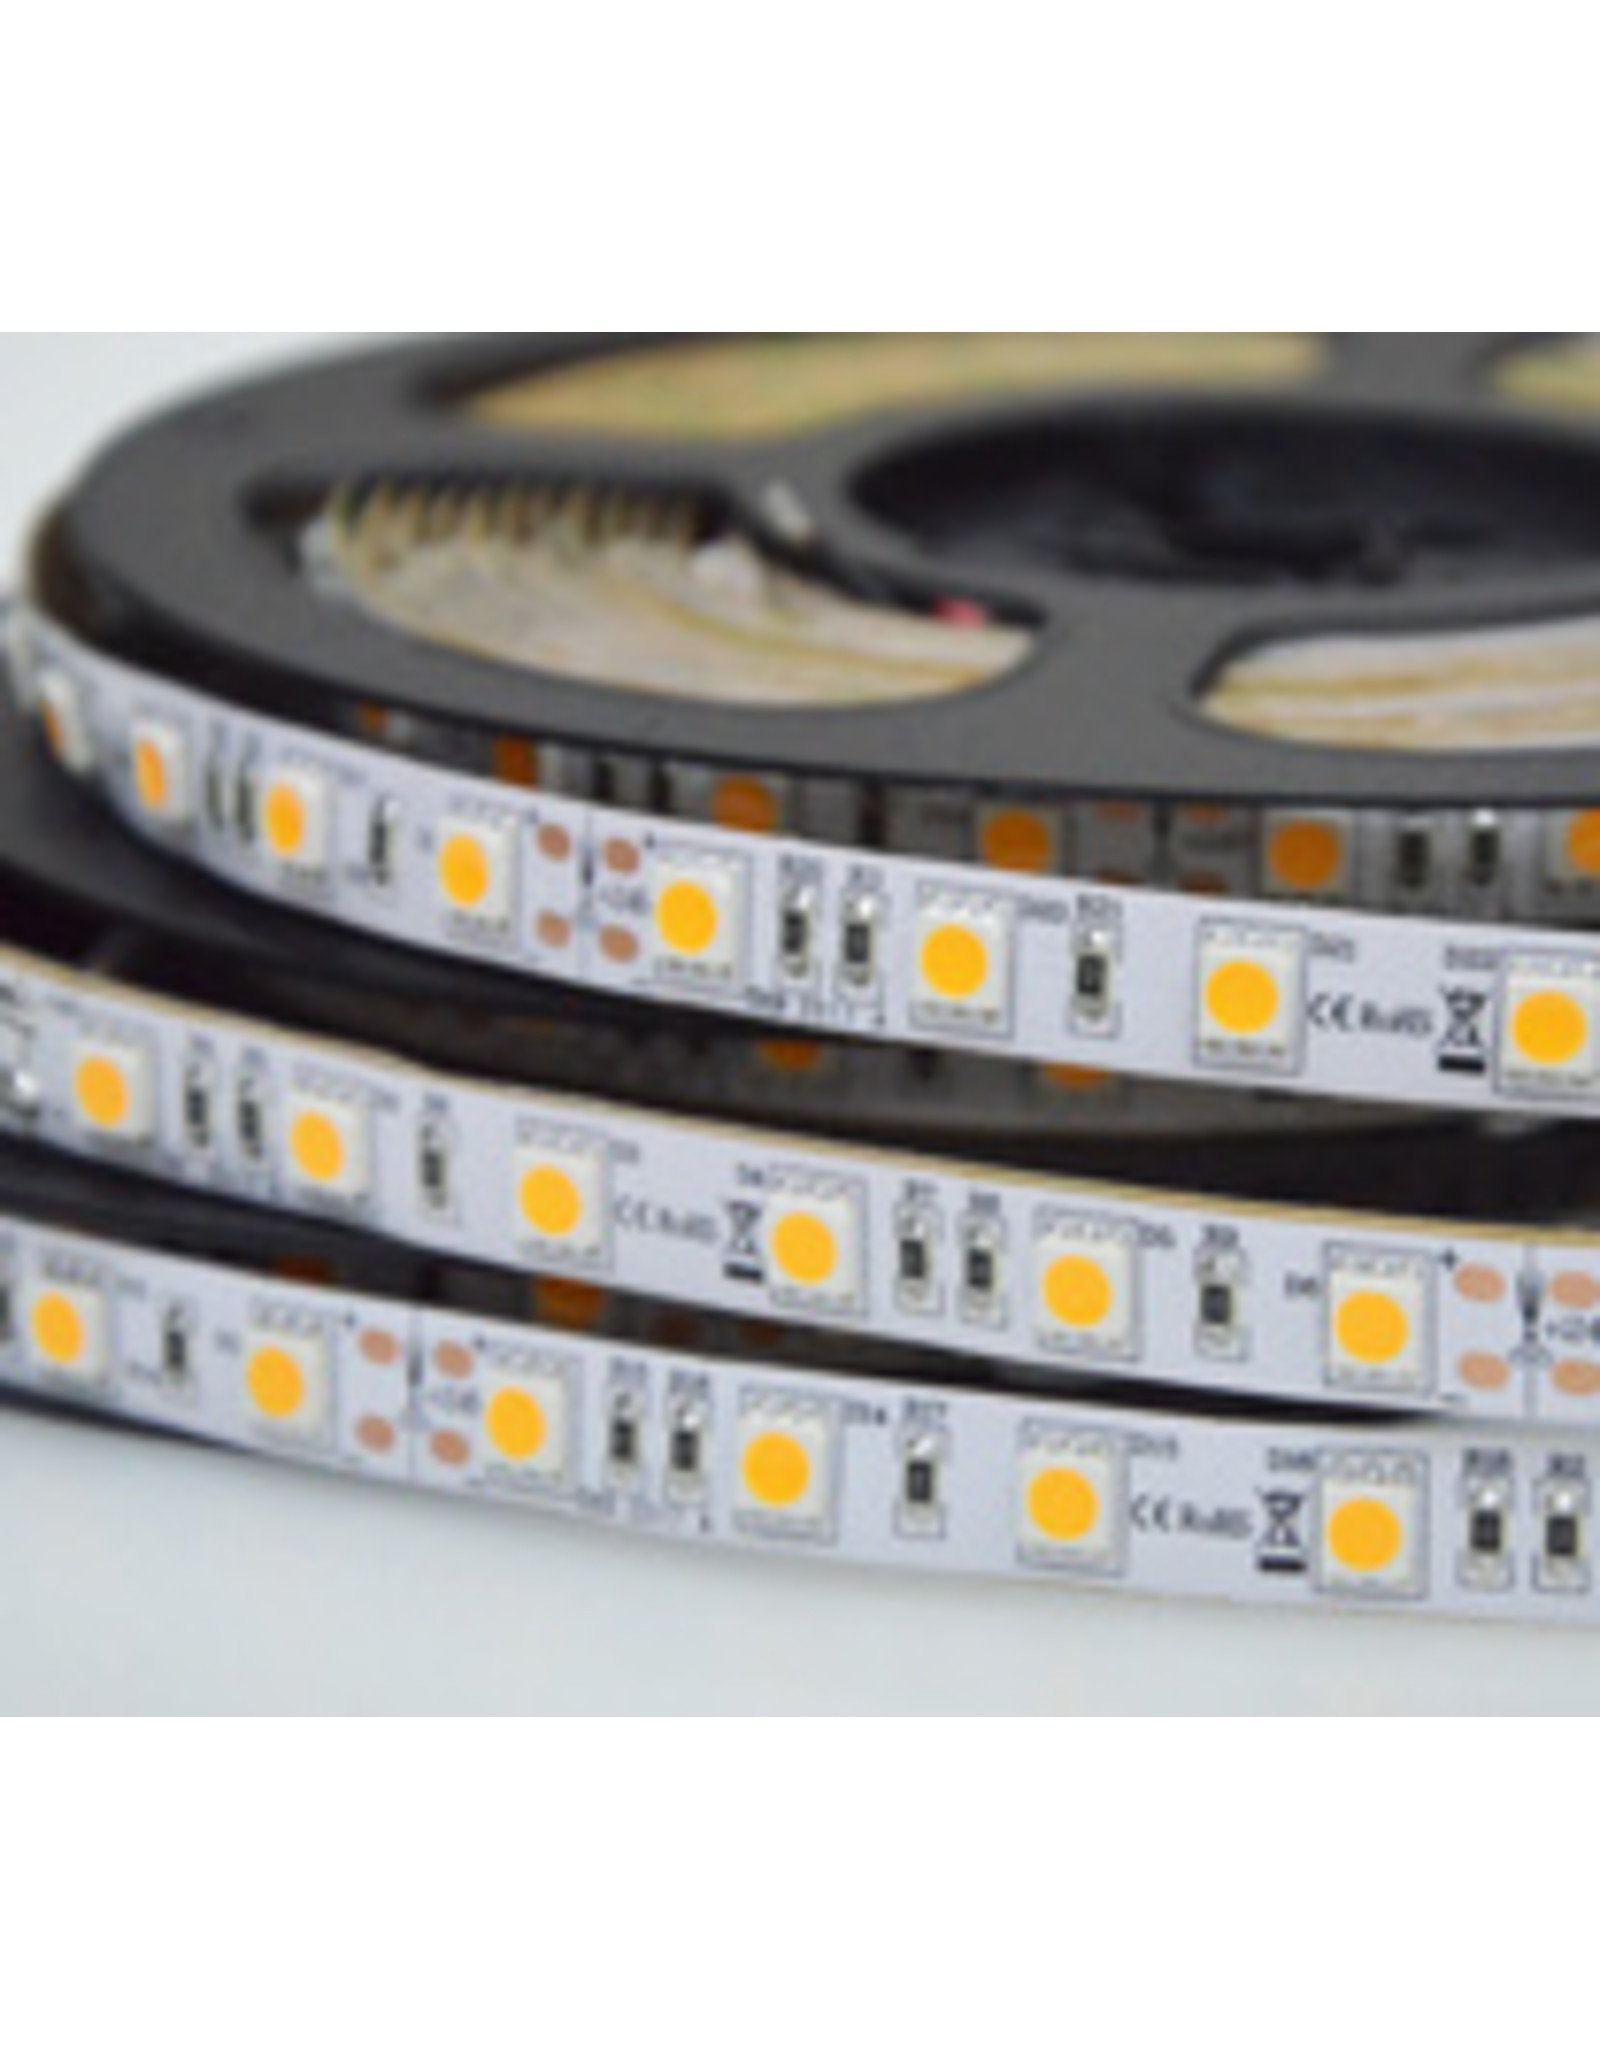 Lights Ledstrip 24v, 70w/5m, warm white 3000-3200k